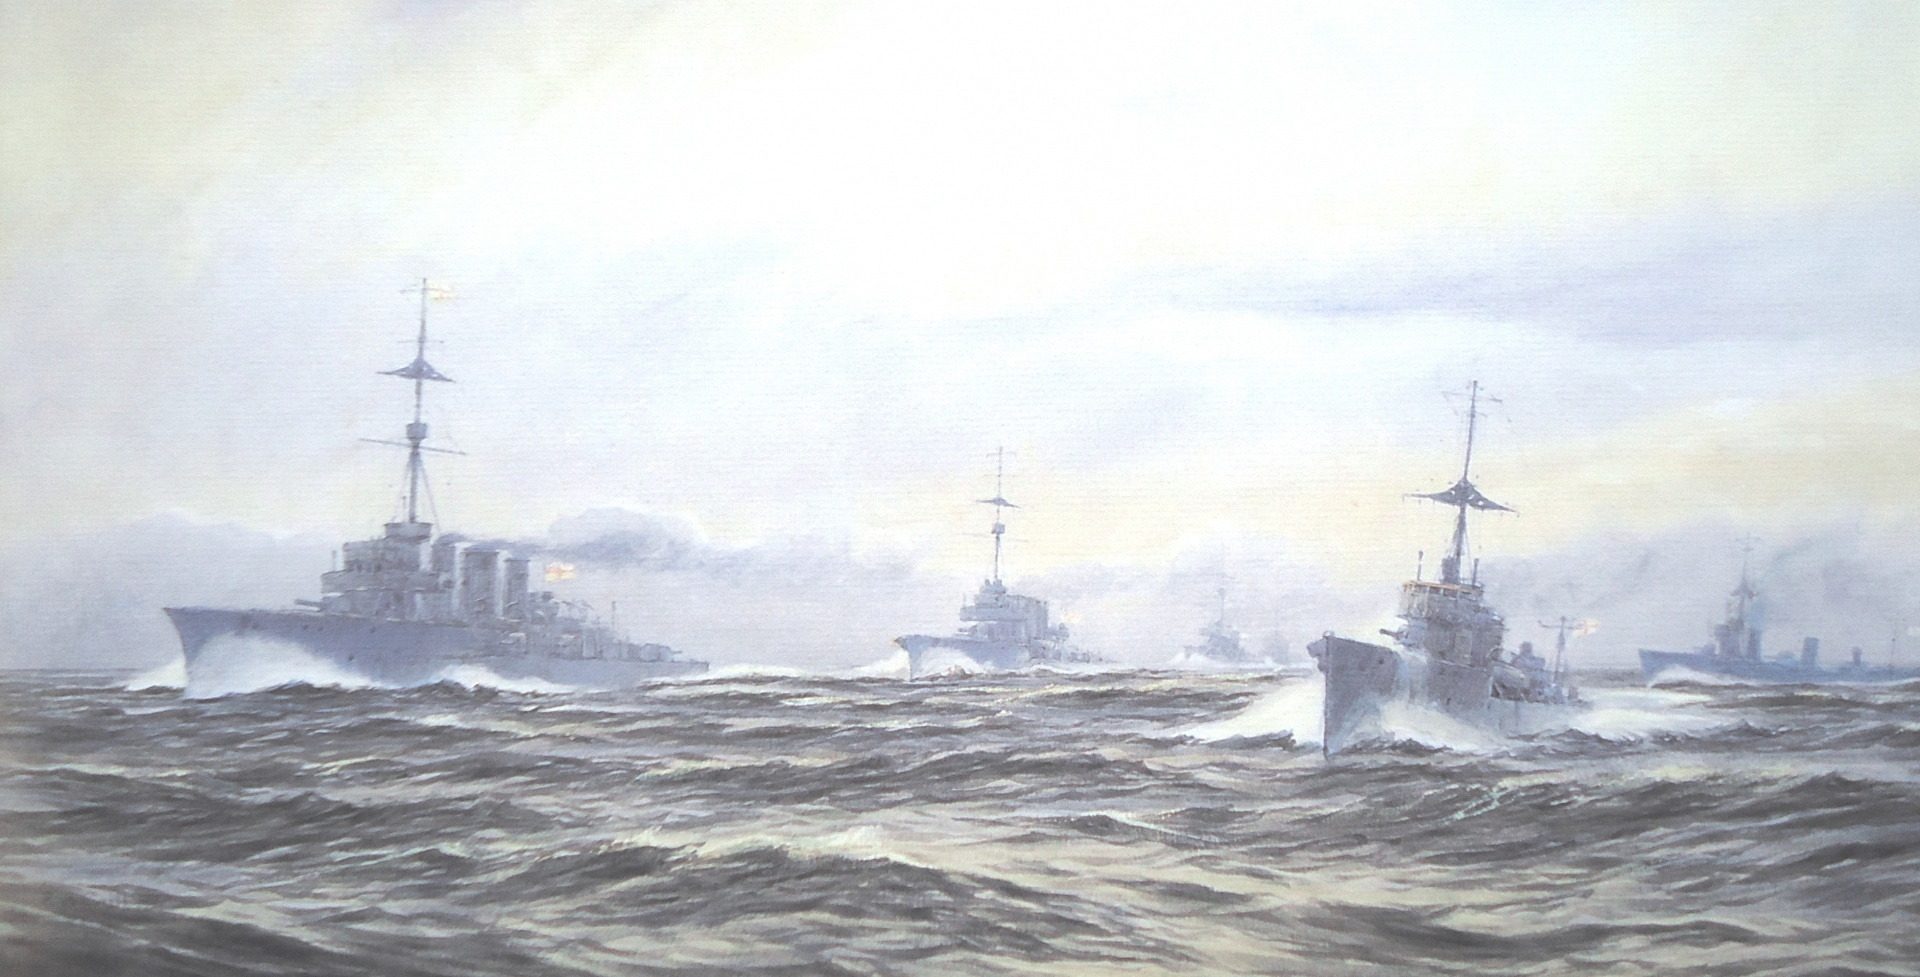 Grand Fleet escorts, World War 1